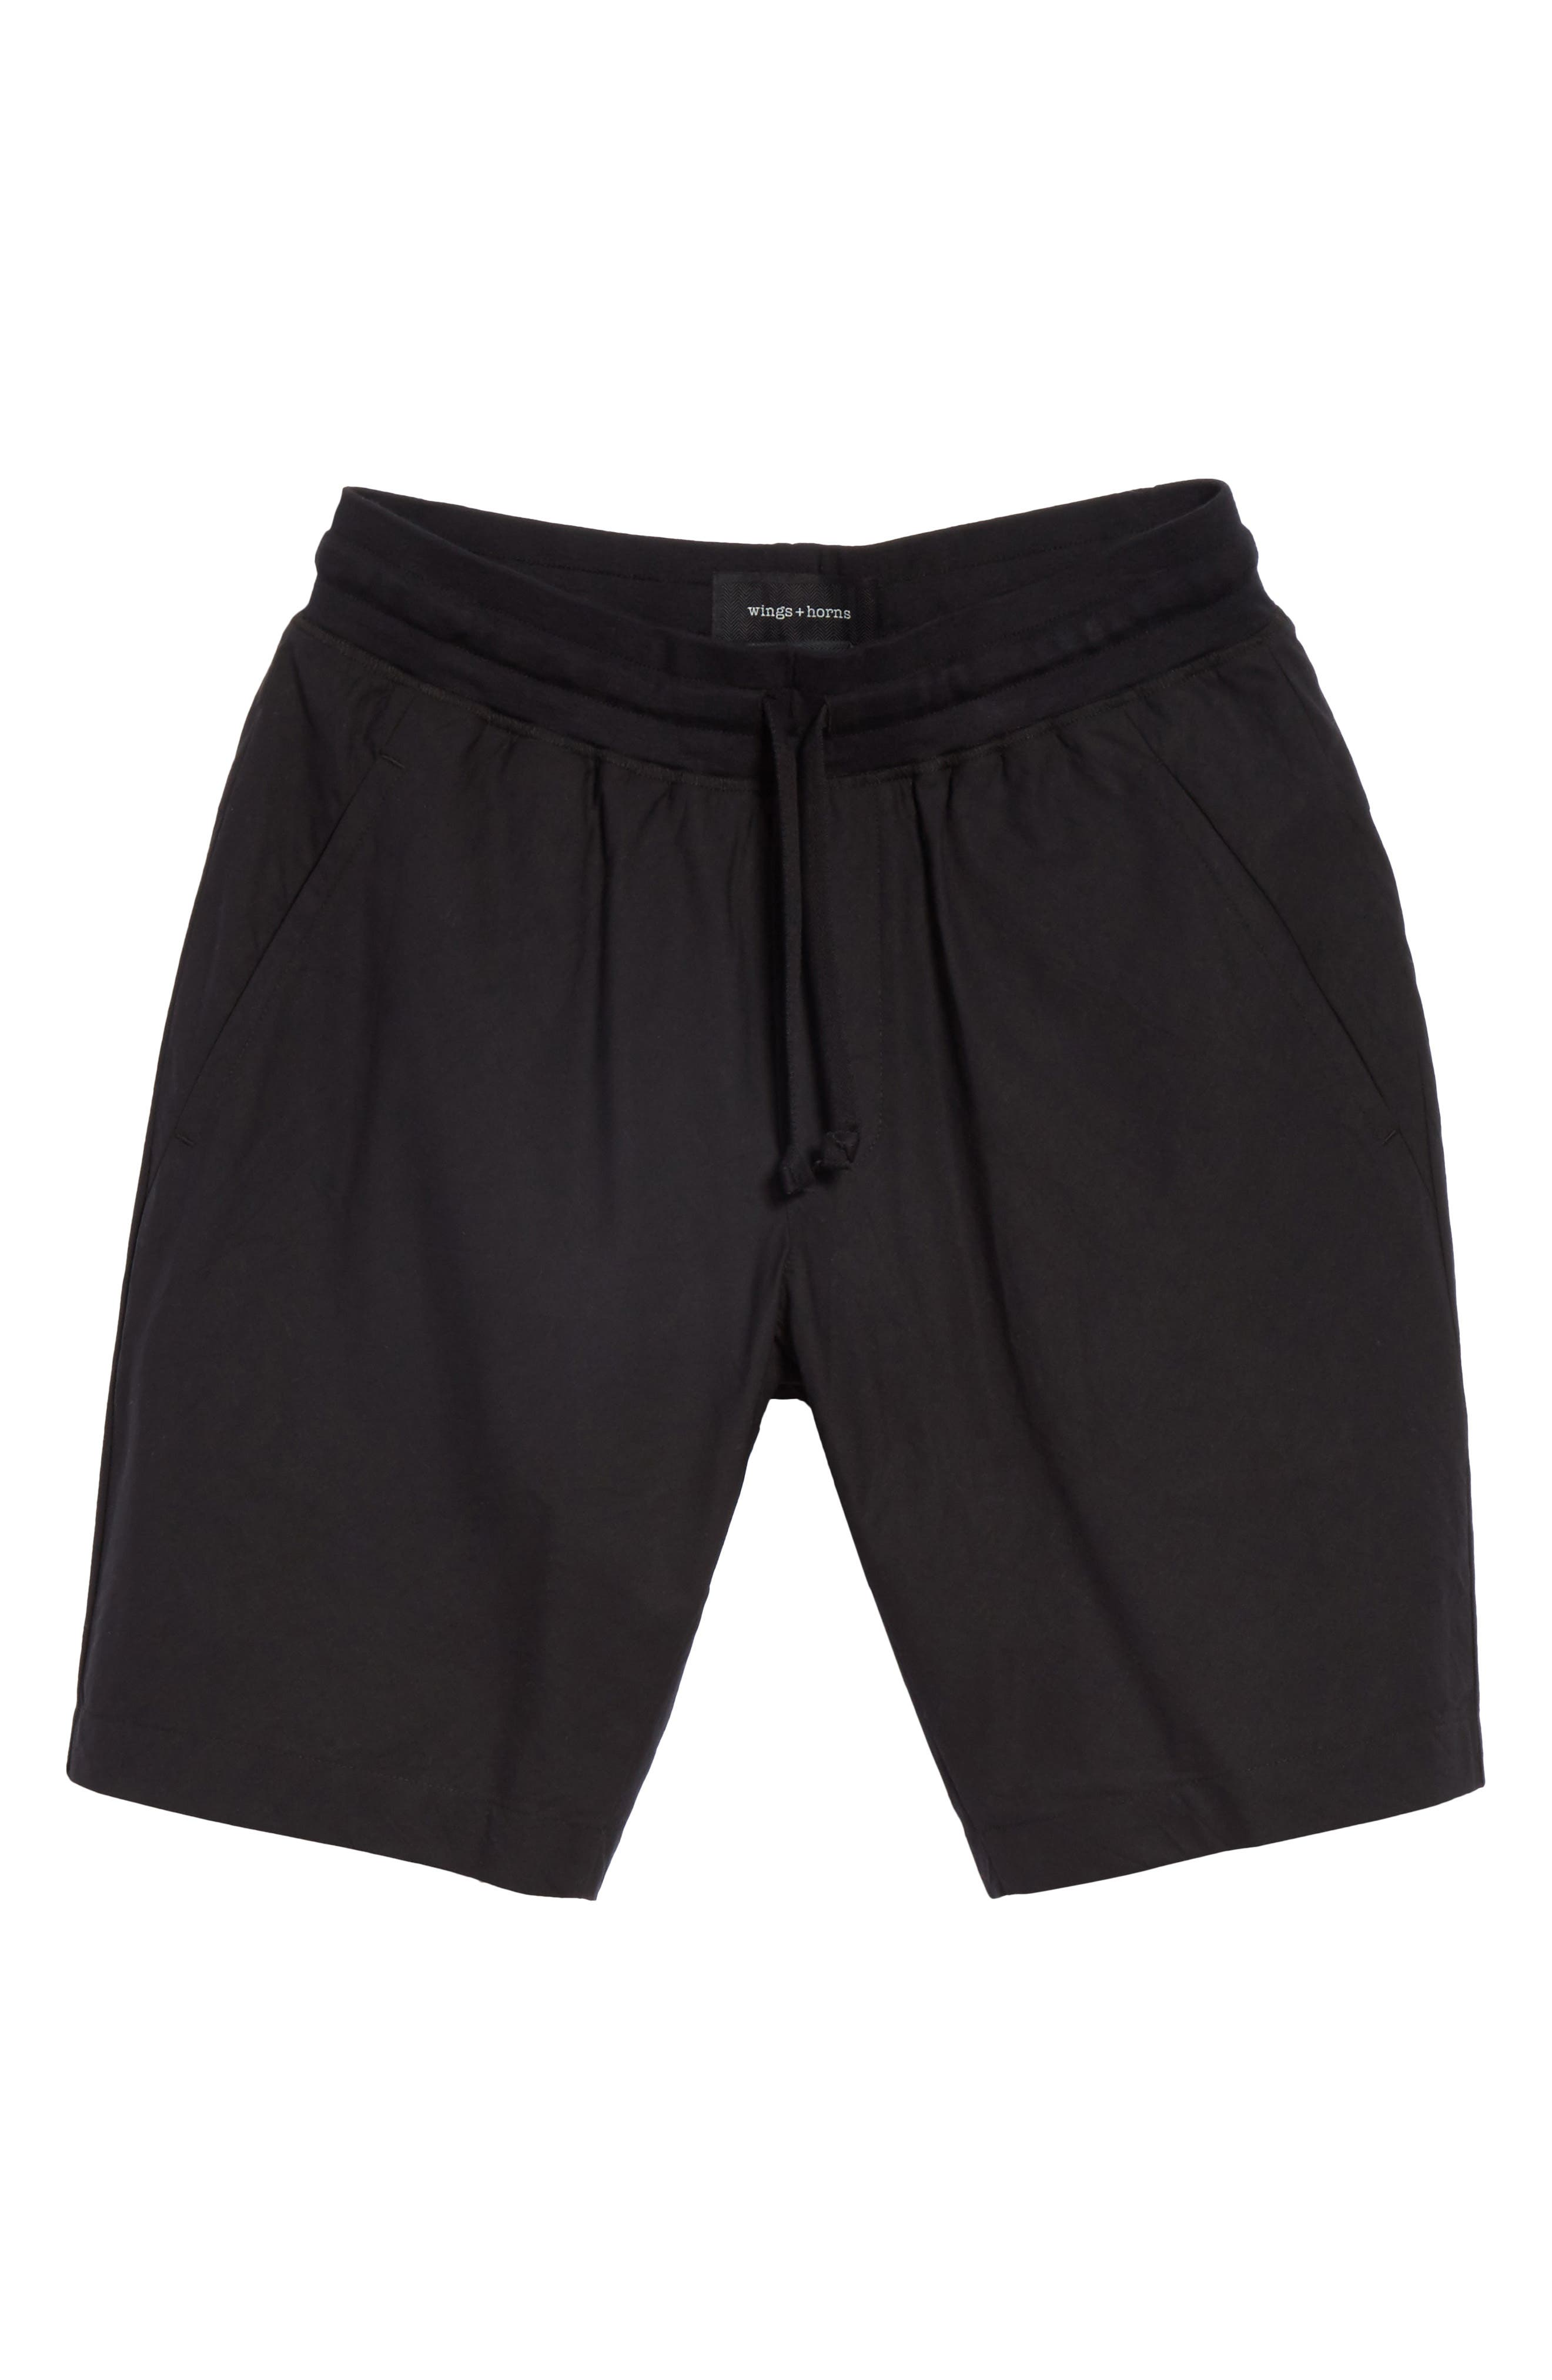 Overlay Shorts,                             Alternate thumbnail 6, color,                             001